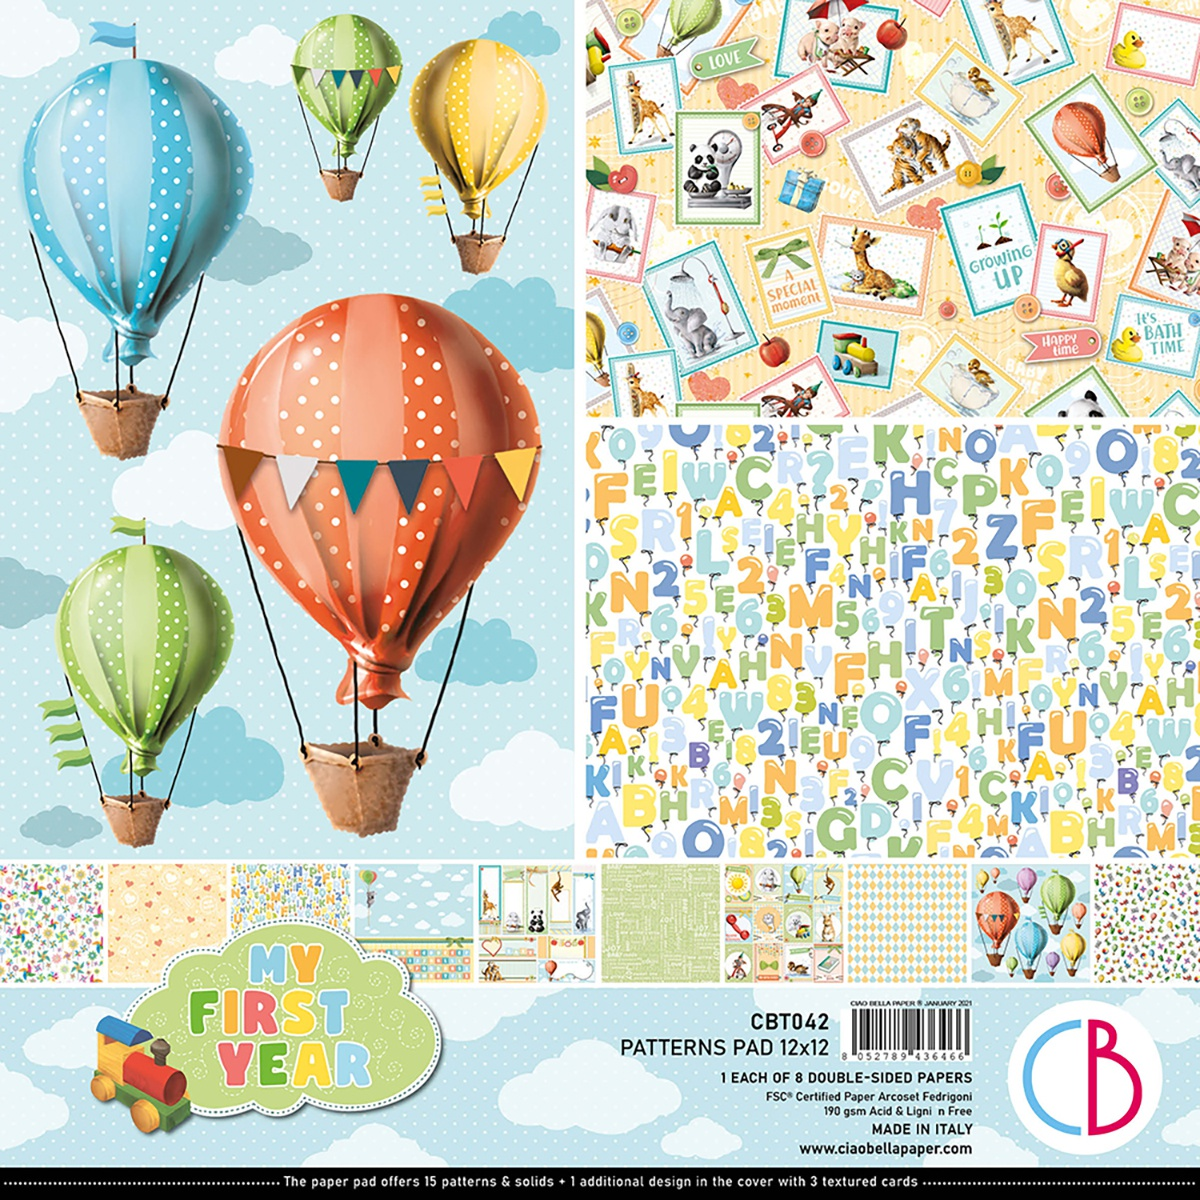 Ciao Bella Double-Sided Paper Pack 90lb 12X12 8/Pkg-My First Year, 8 Designs/1 Each